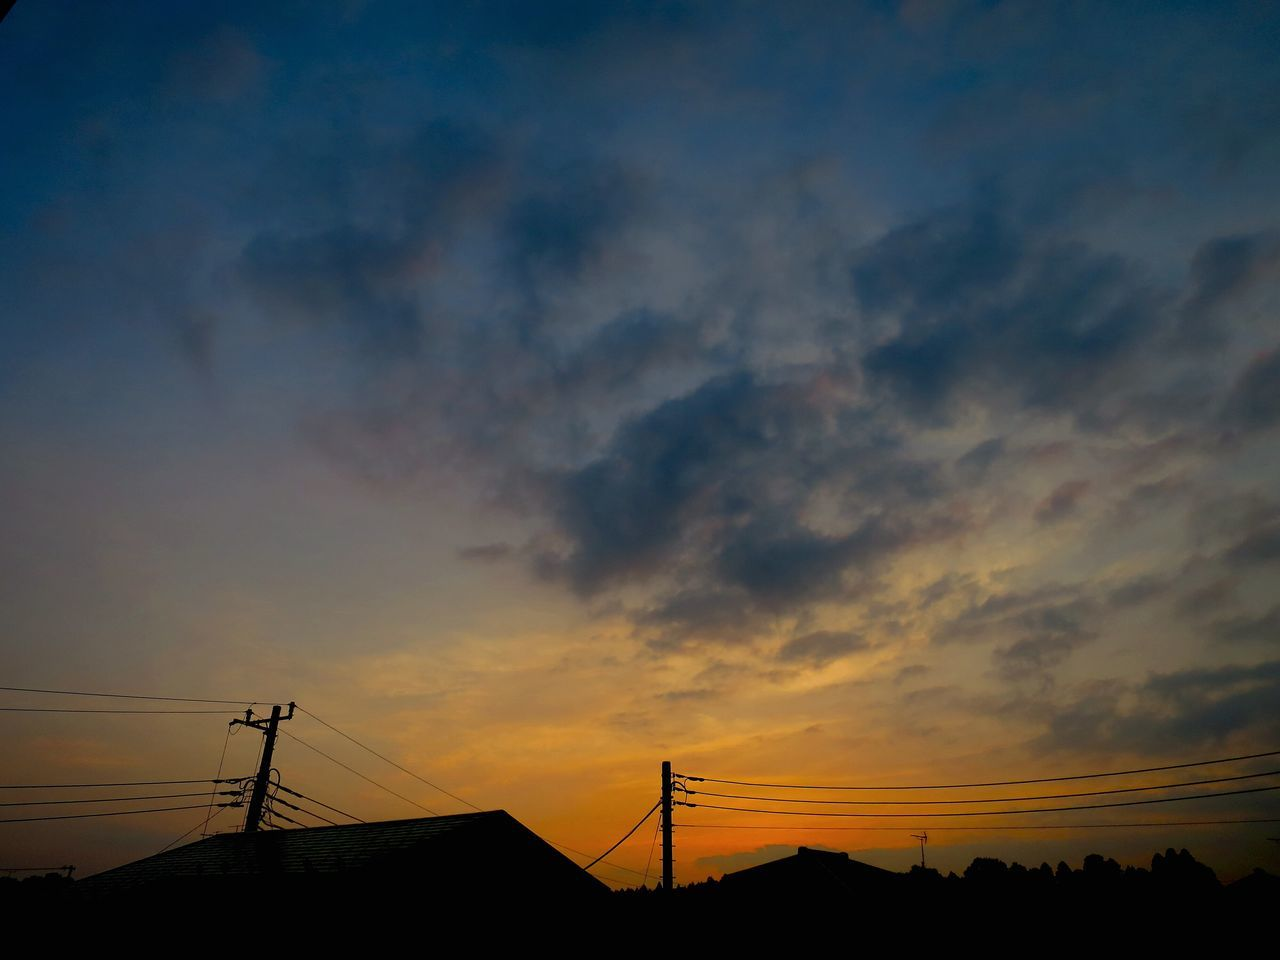 sunset, silhouette, connection, cloud - sky, sky, technology, orange color, cable, nature, beauty in nature, scenics, no people, low angle view, electricity pylon, outdoors, architecture